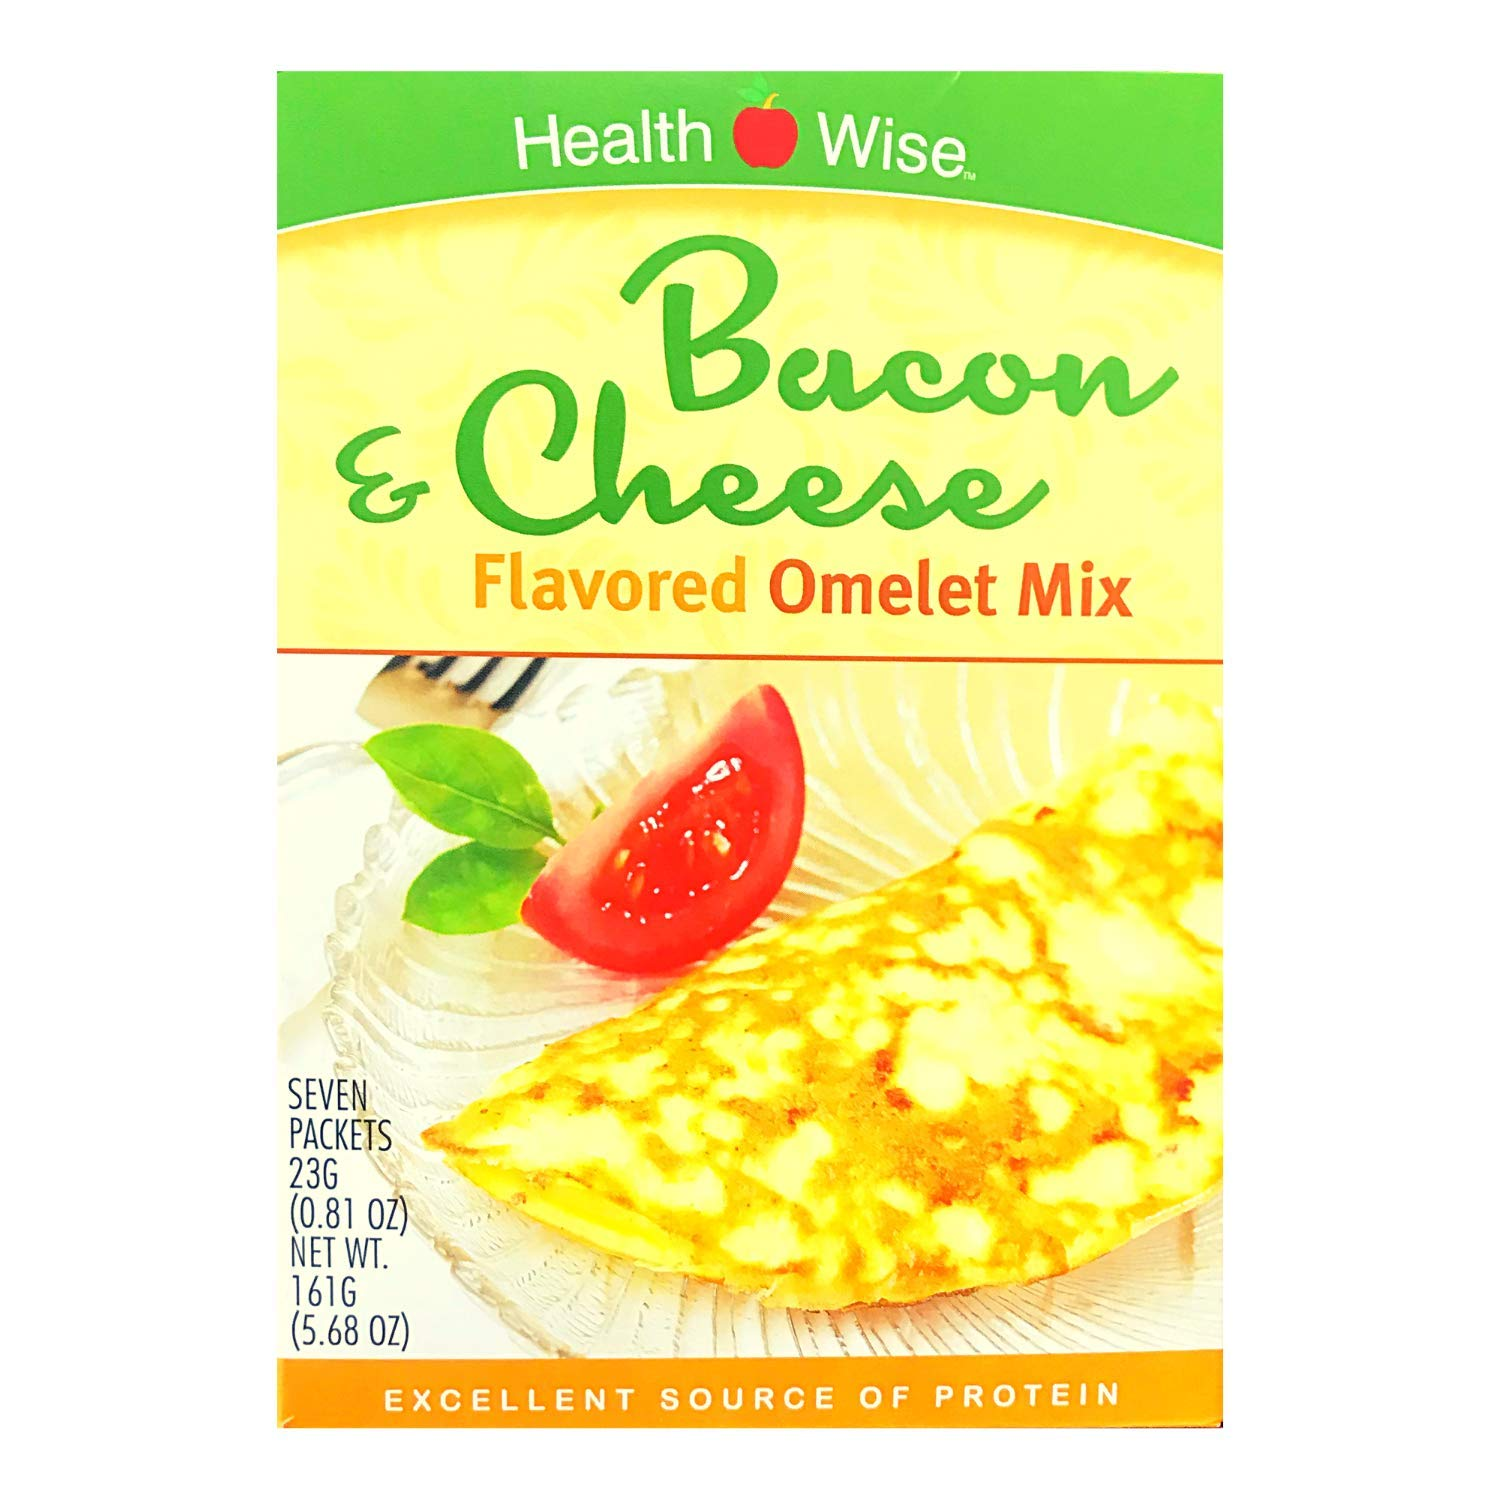 HealthWise Bacon & Cheese Flavored Omelet mix, (7 packets of 0.808 oz., net 5.655 oz.)